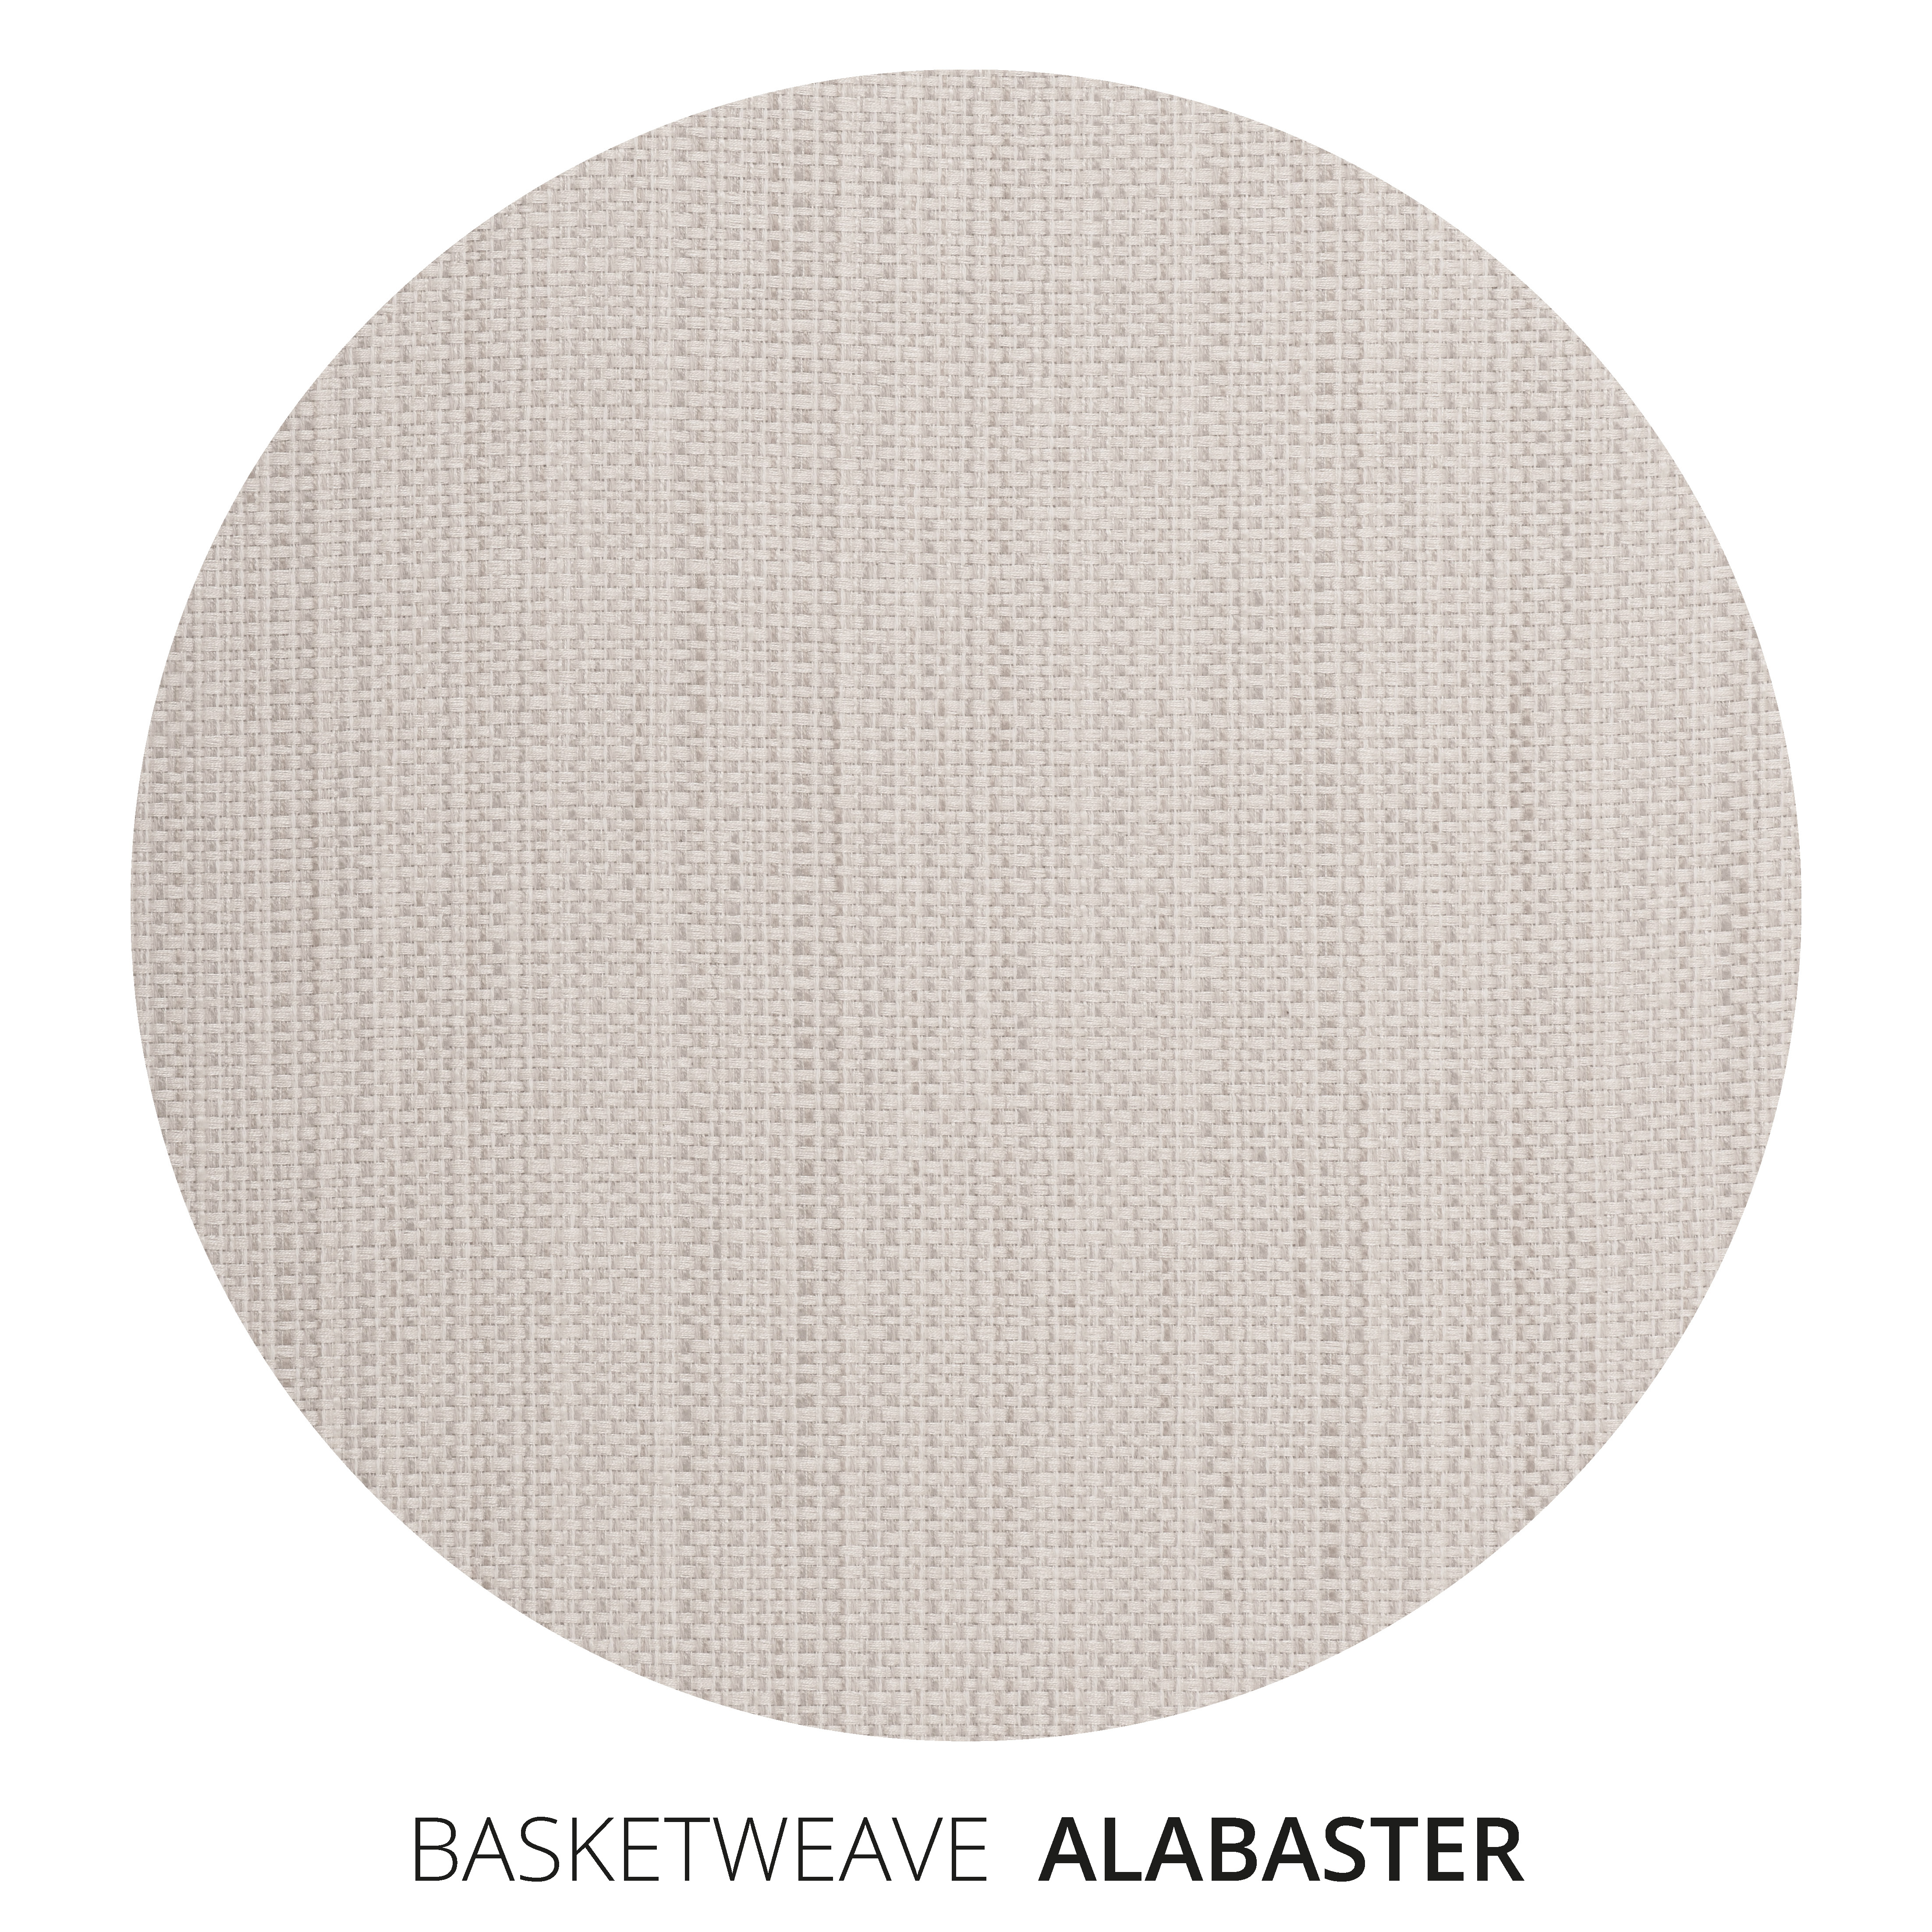 Alabaster Basketweave Swatch